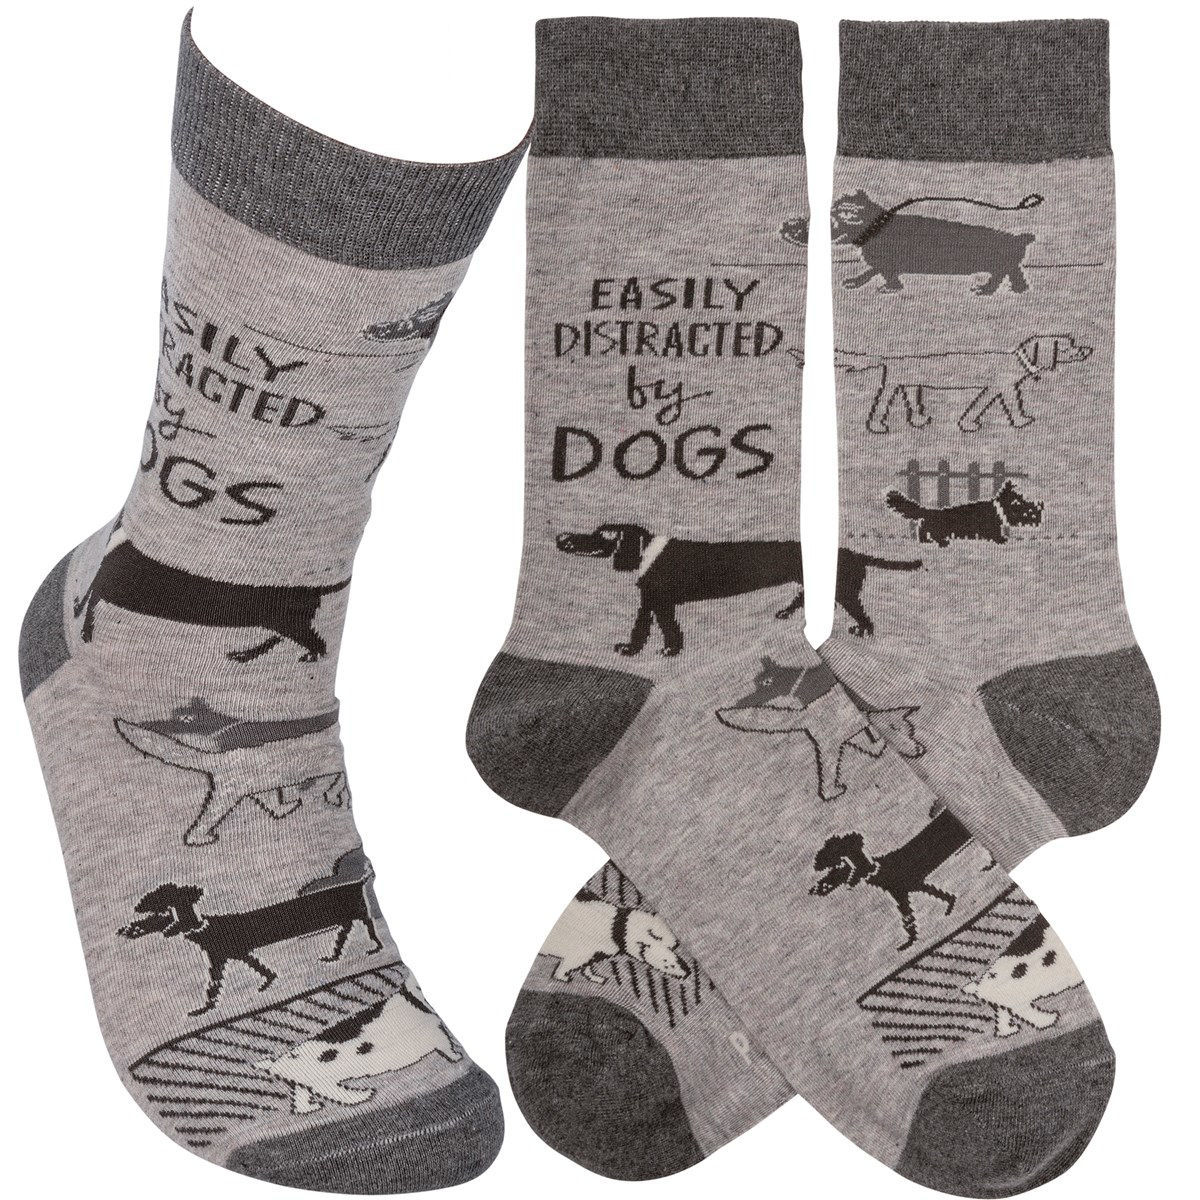 Easily Distracted by Dogs Socks by Primitives by Kathy